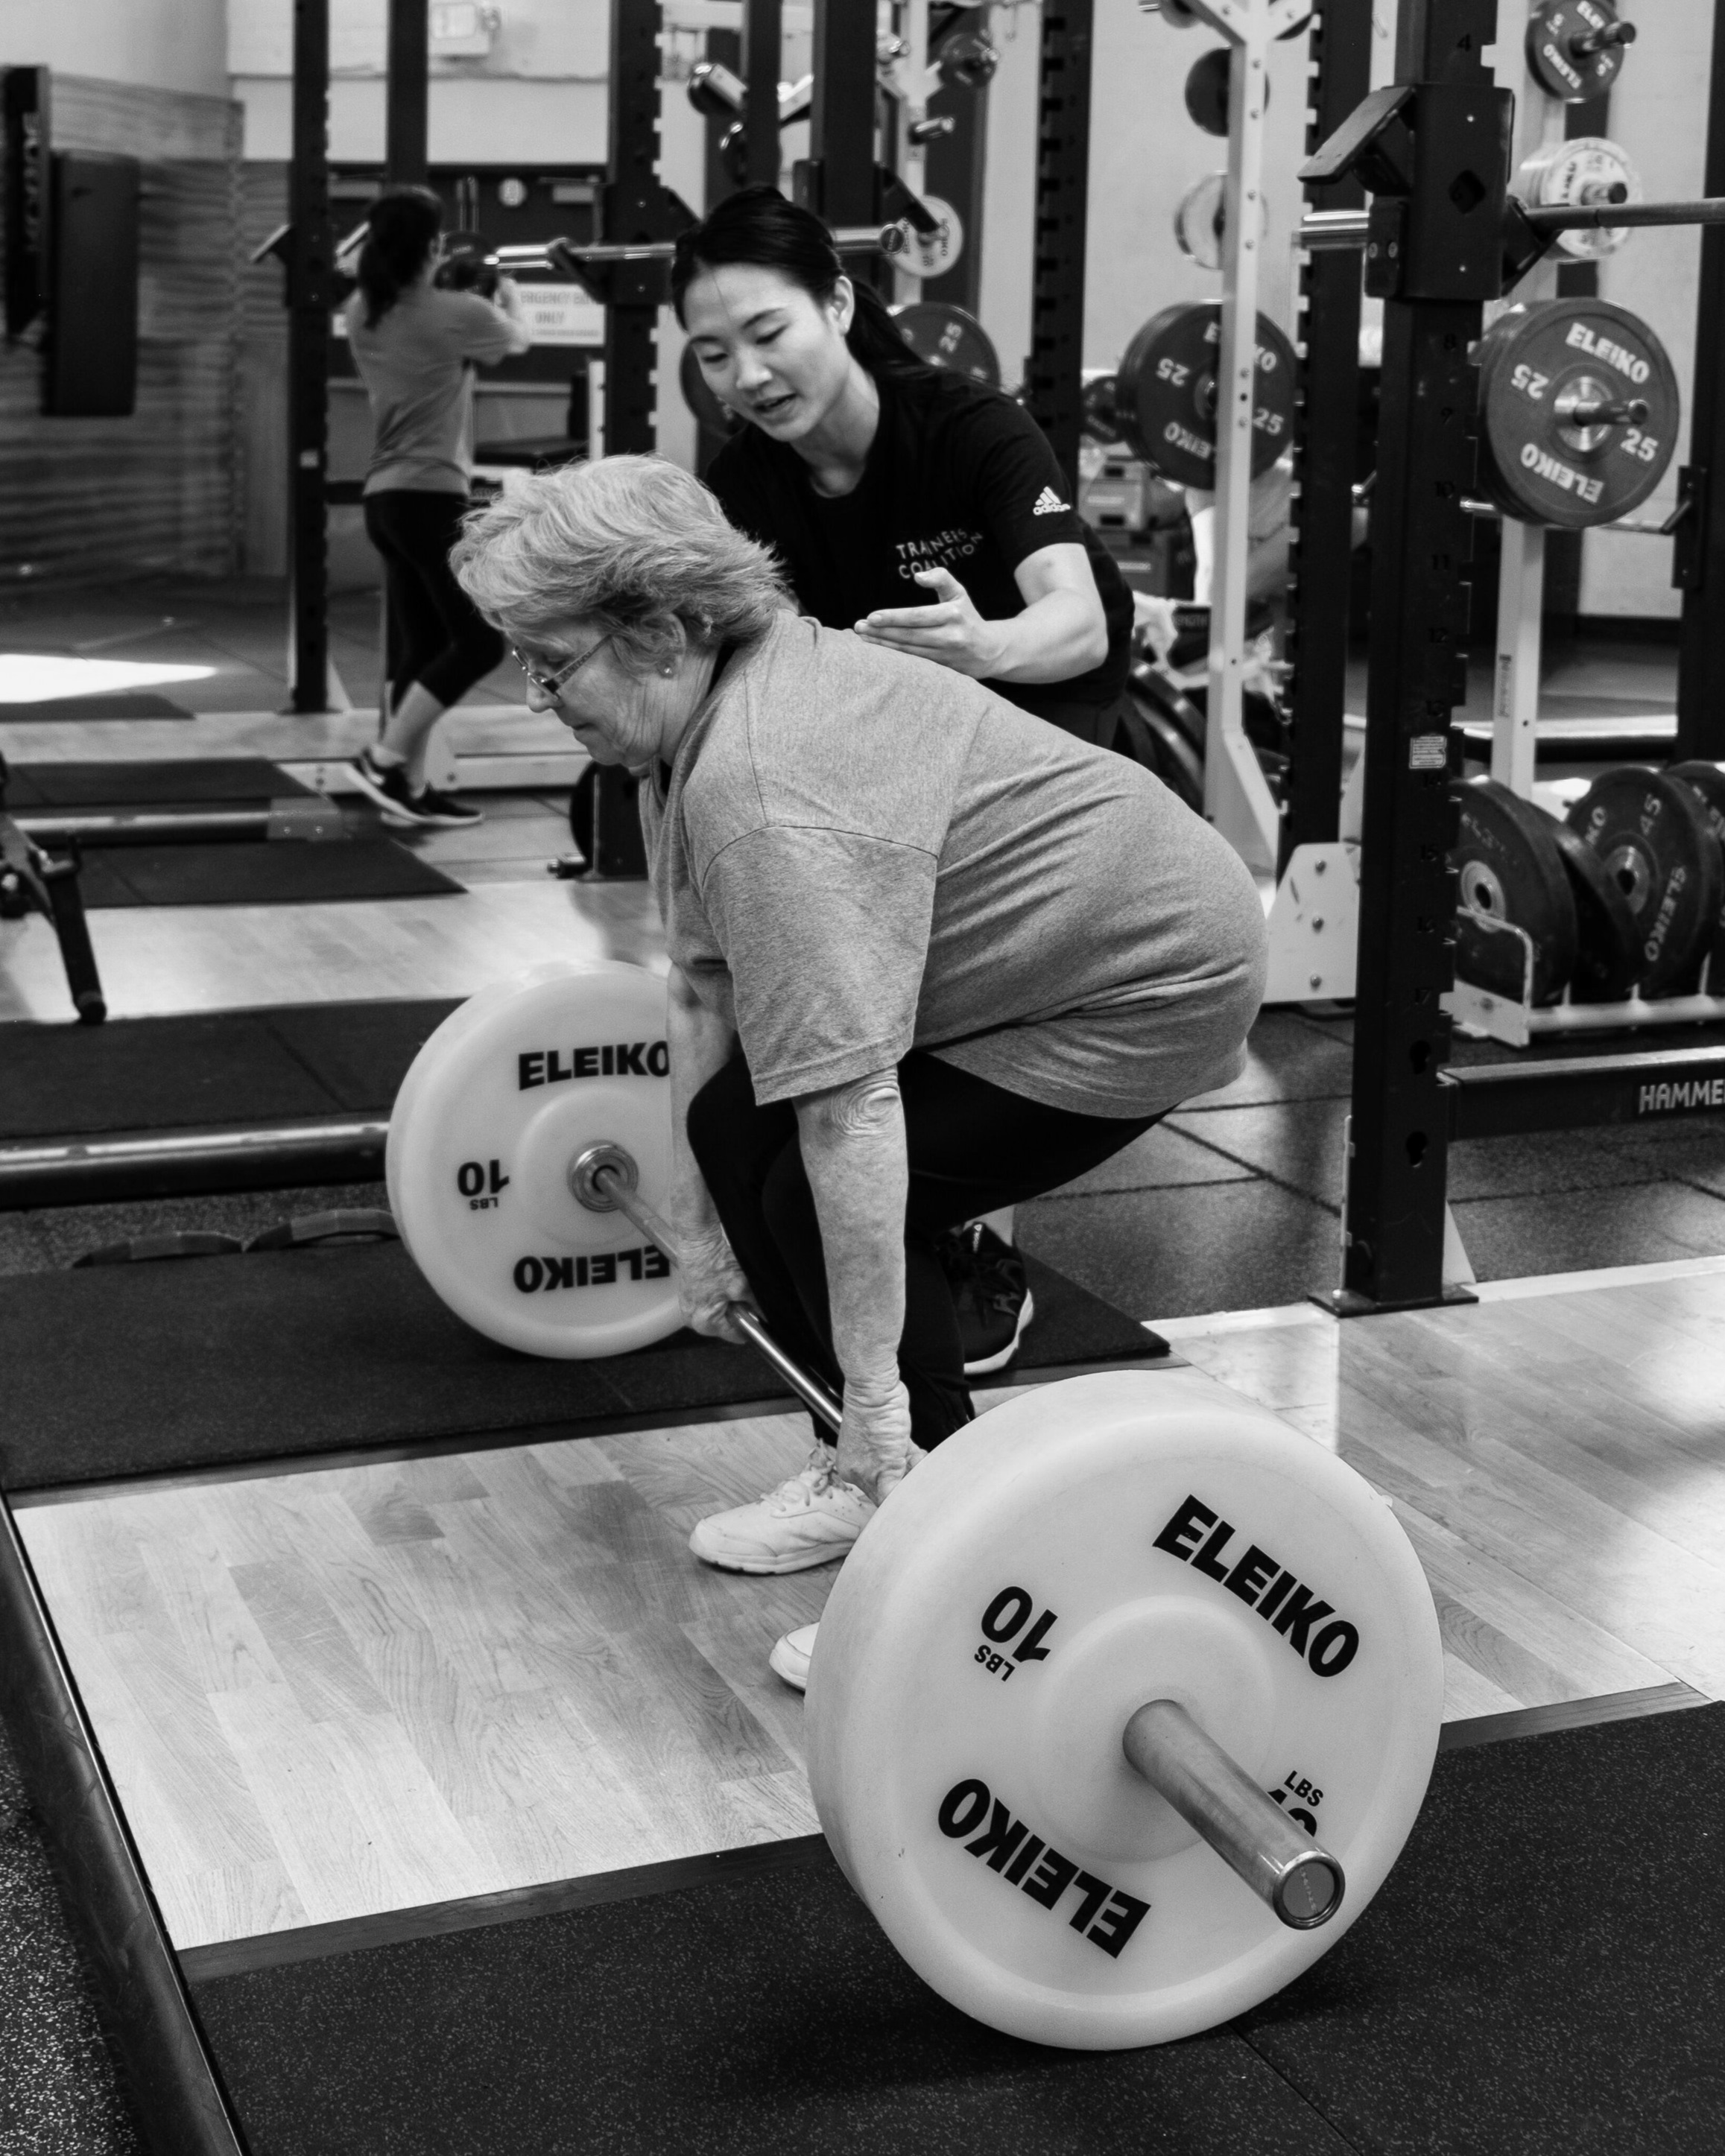 our impact - In just one year, we've provided 110 months of gym memberships and 163 sessions of 1-on-1 personal training — a total value of over $24,000, all at no cost to our clients.